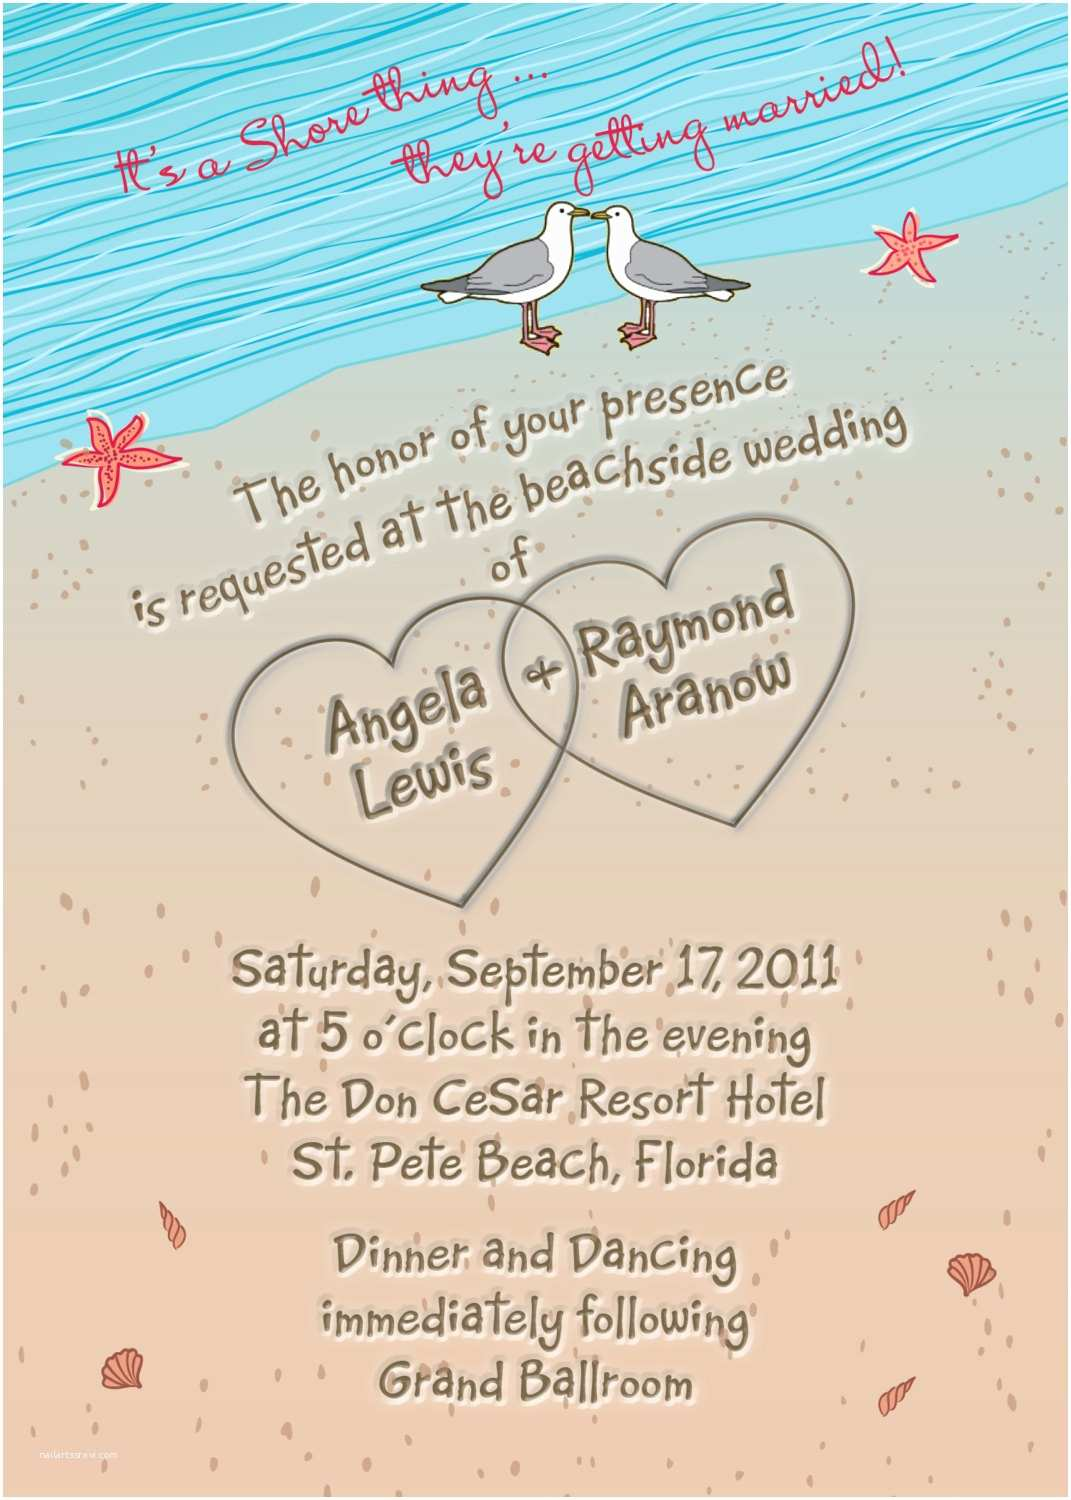 Special Wedding Invitation Wording Beach Wedding Invitation with Hearts In Sand Seagulls and